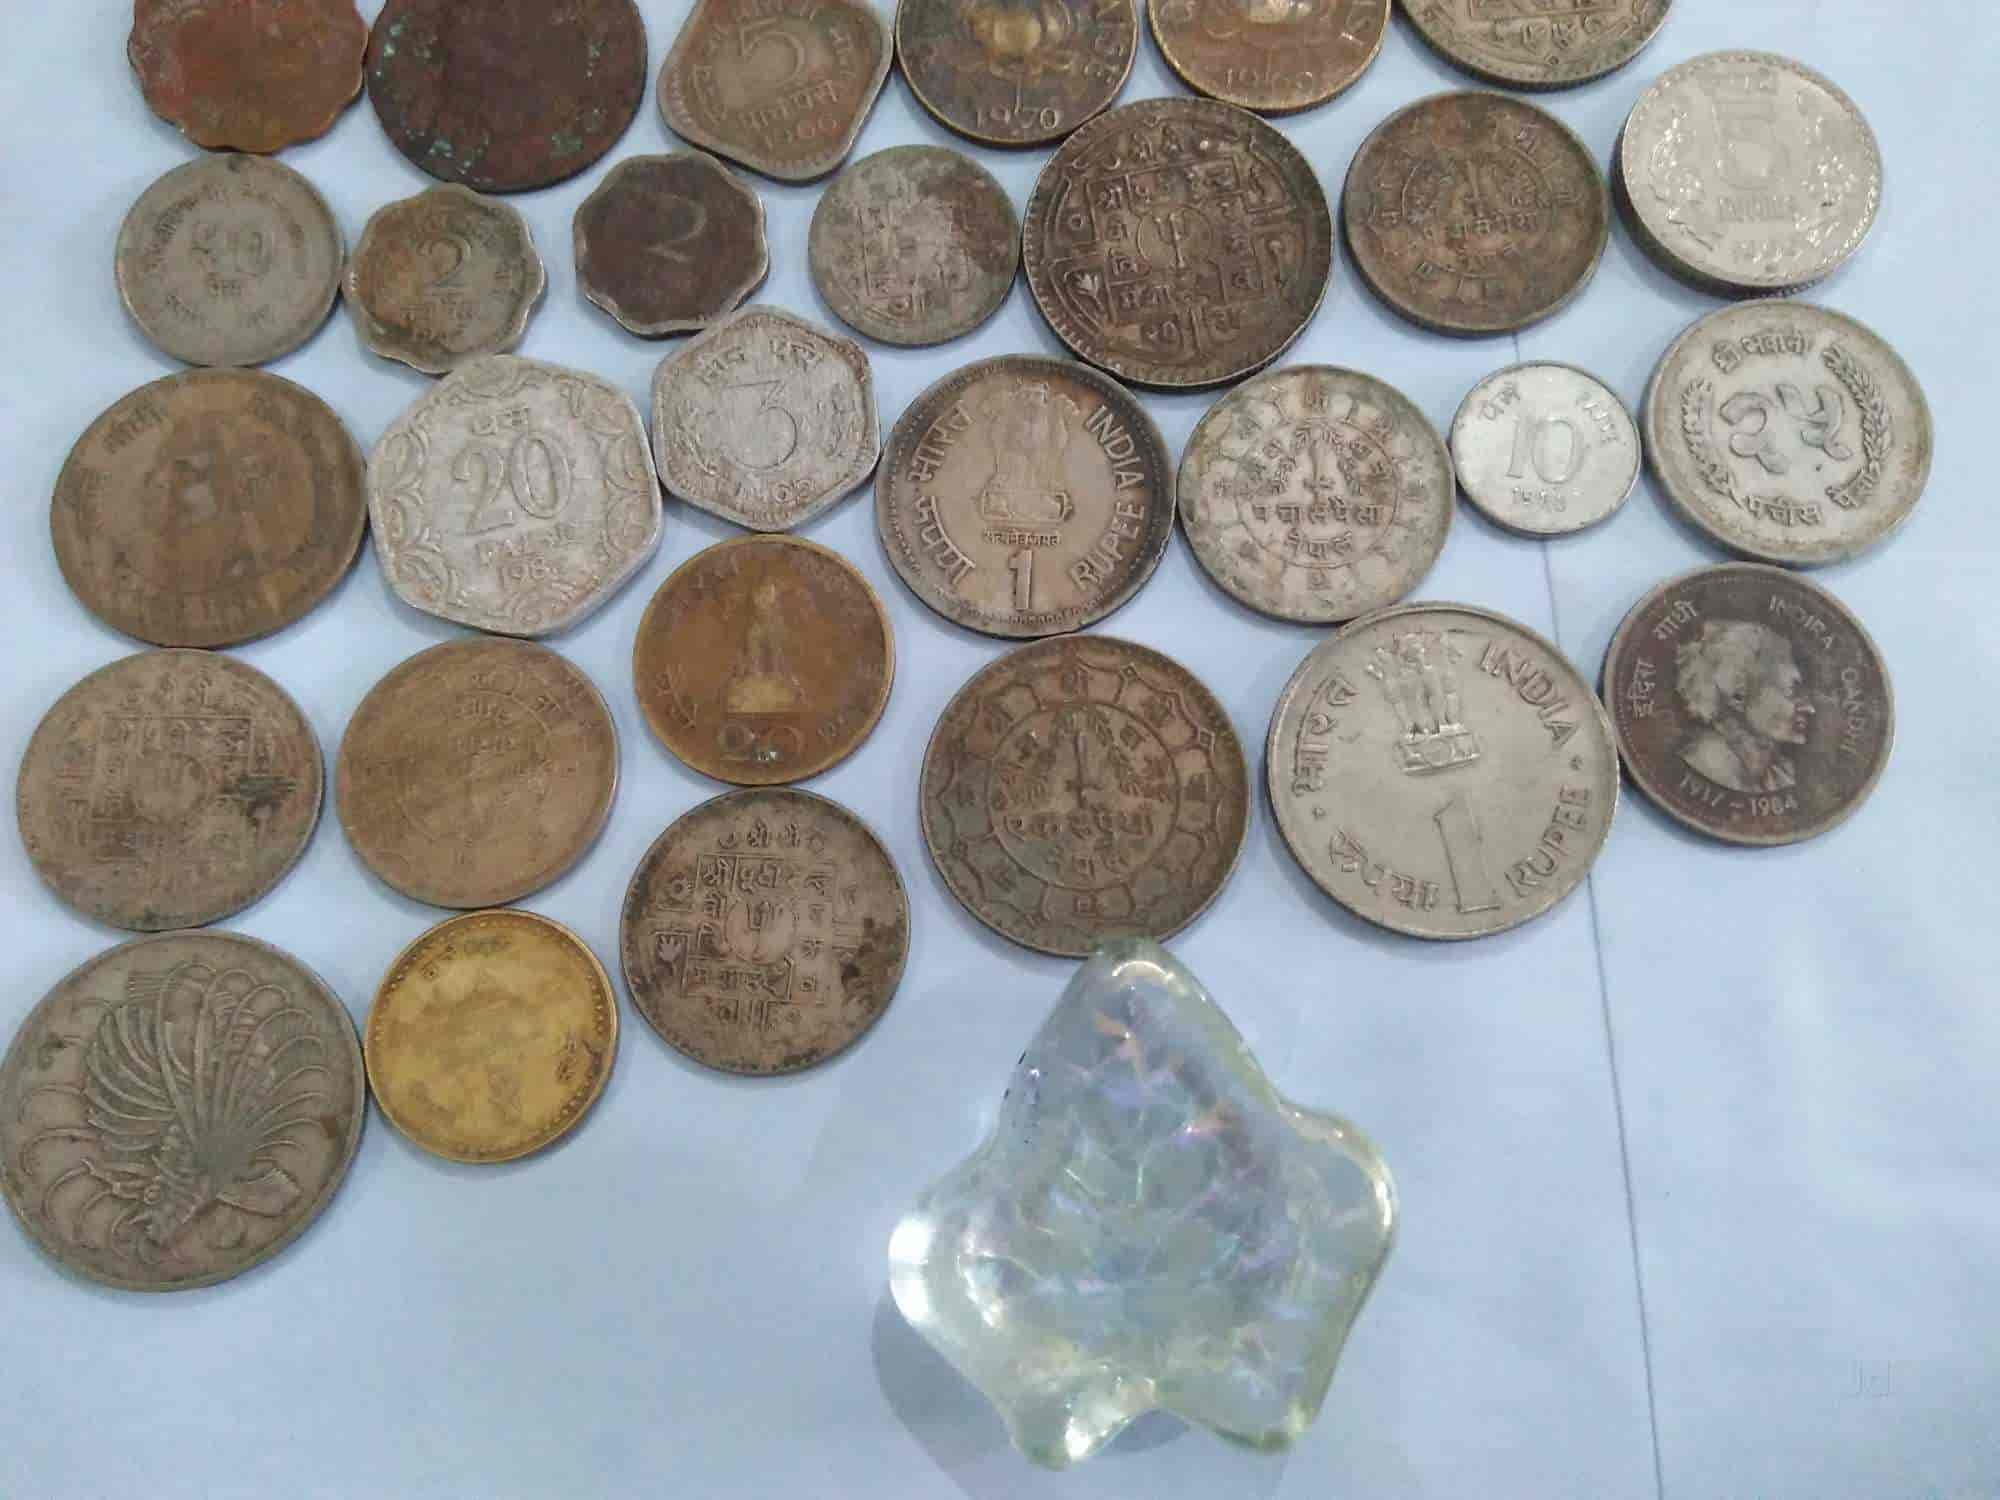 Sell Old Coins Photos, Behala, Kolkata- Pictures & Images